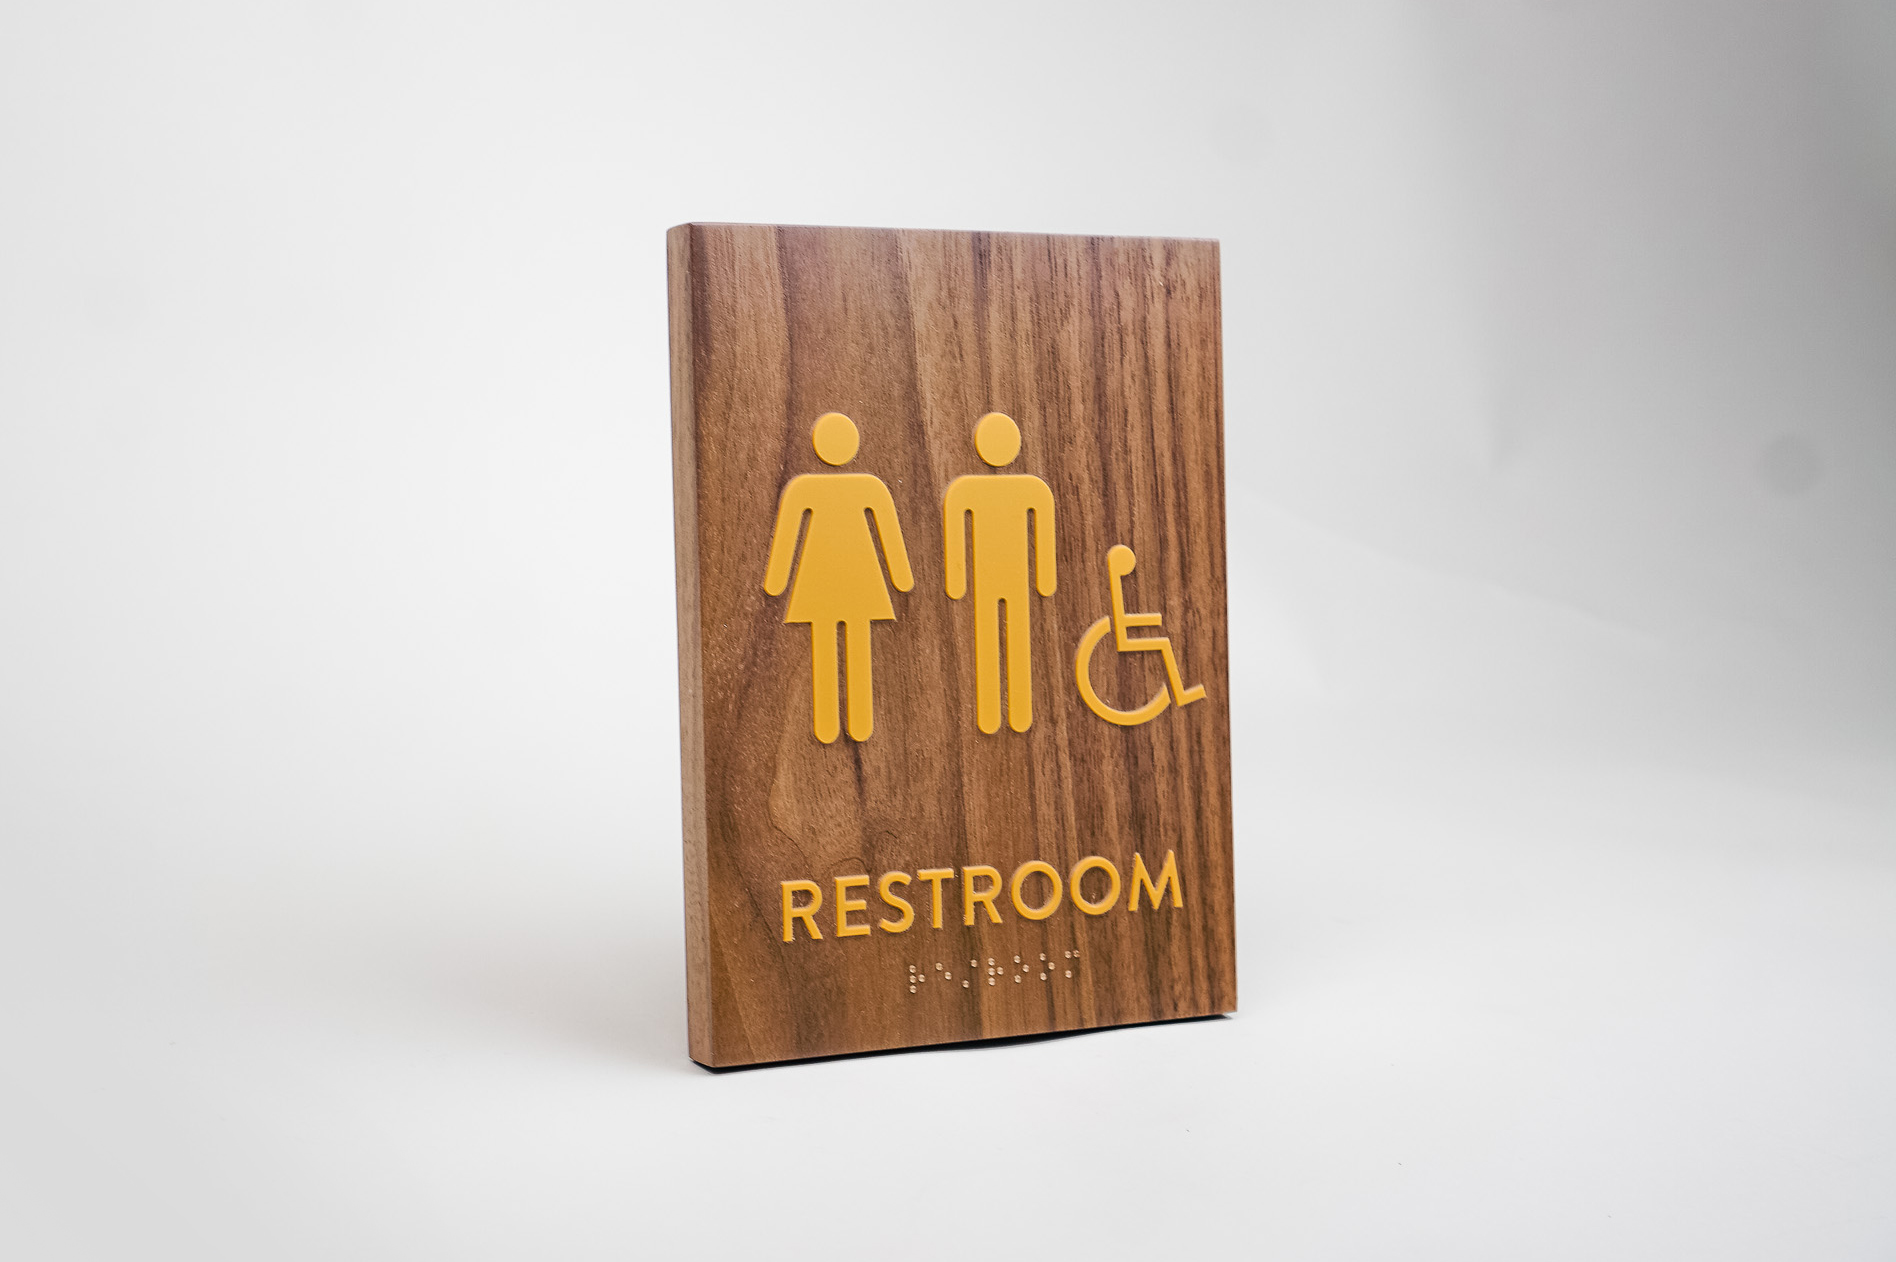 Gold and walnut wood ADA compliant restroom sign